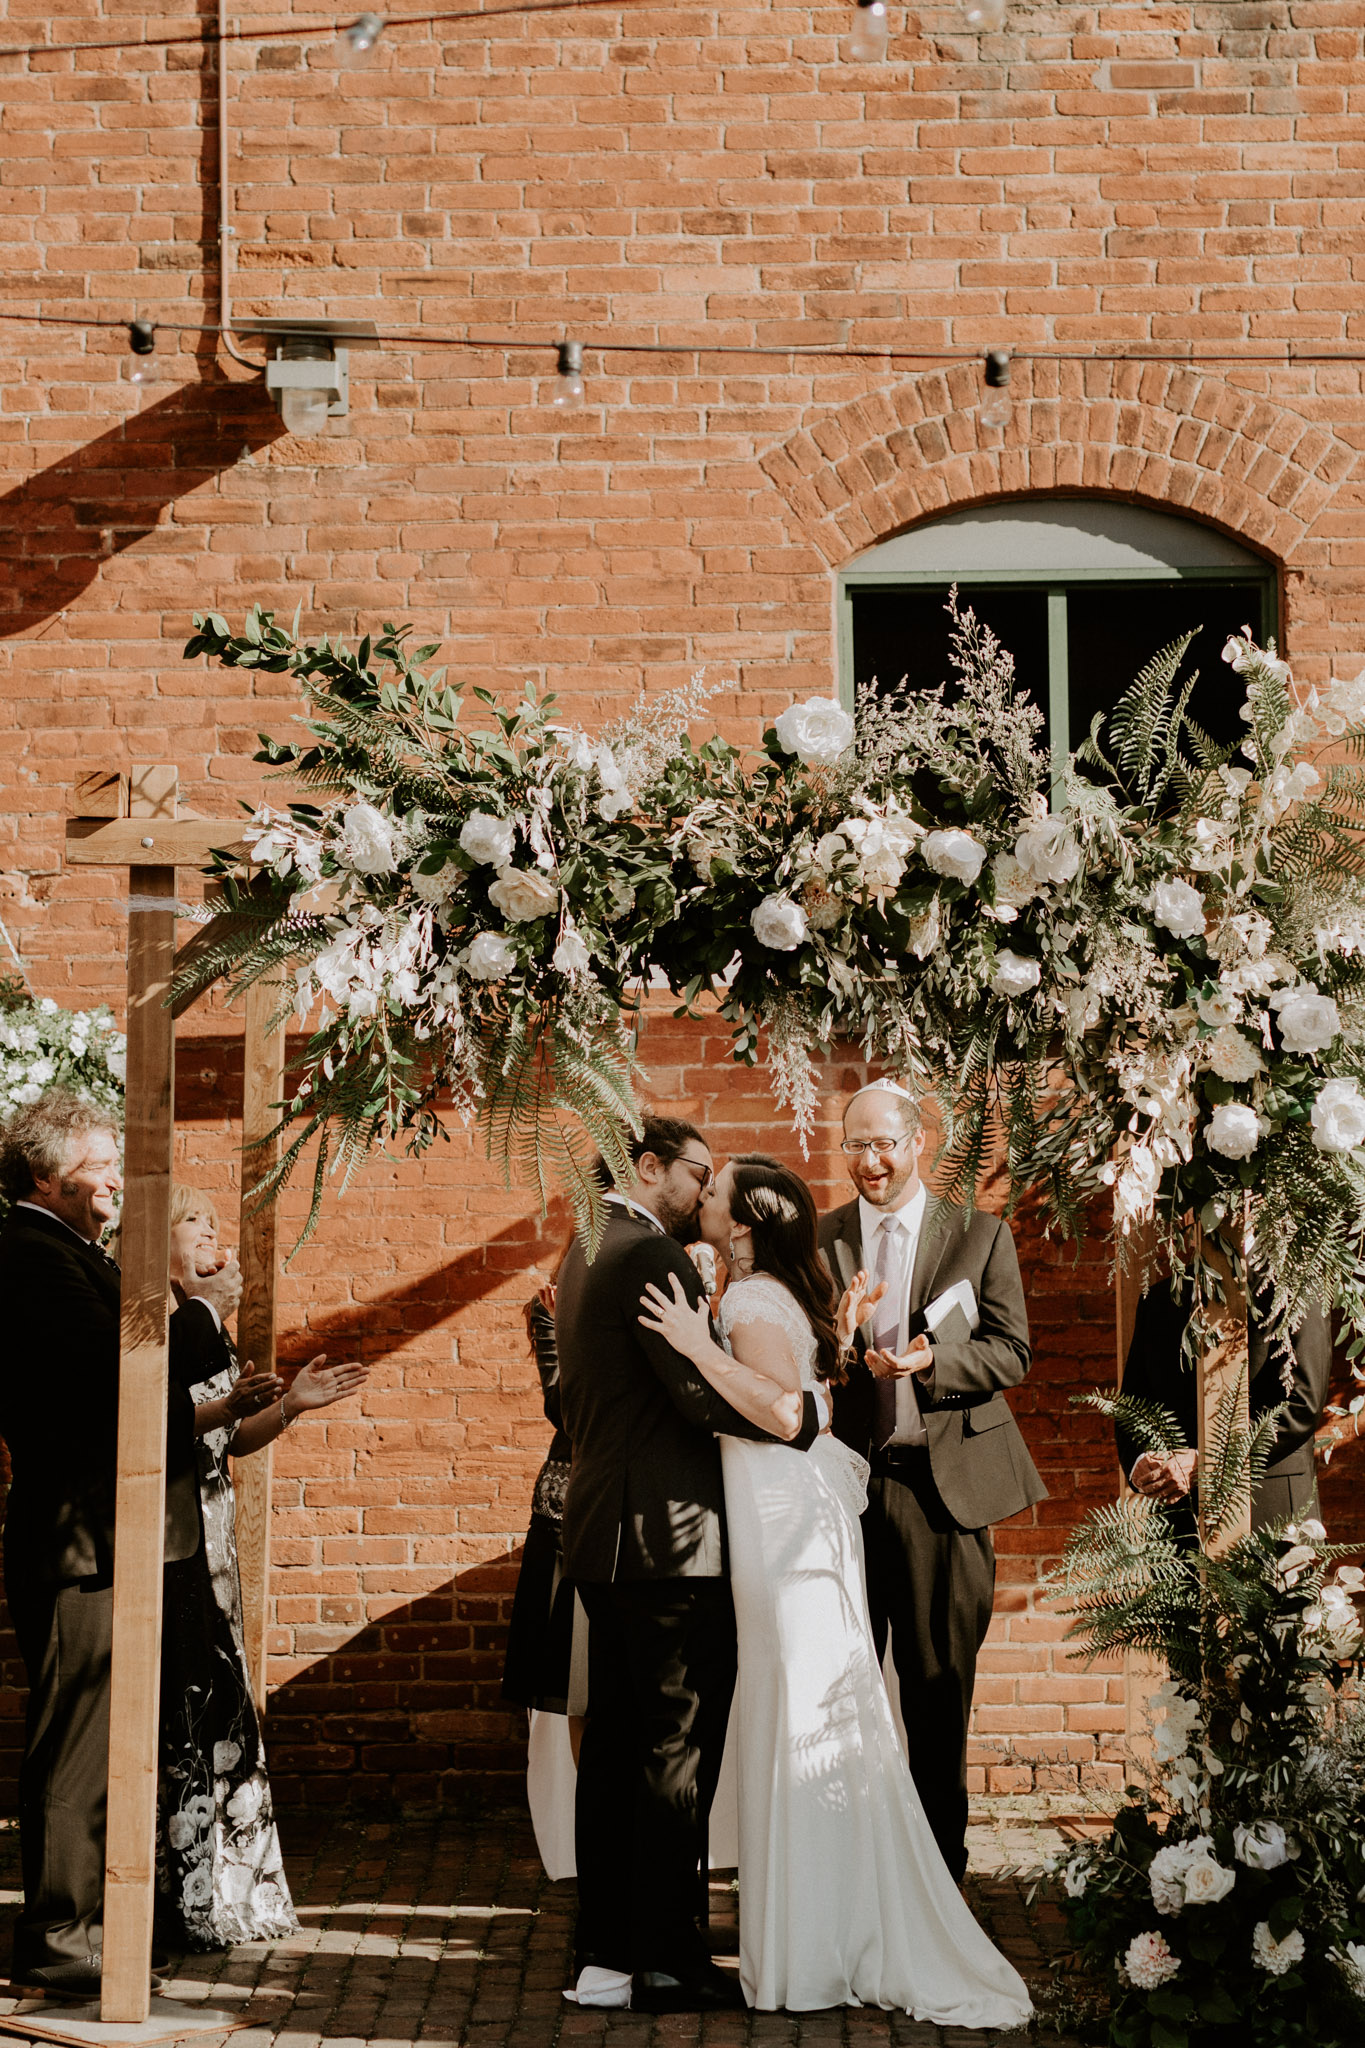 Archeo Wedding Distillery District - Newlyweds First Kiss - White Rose Alter Florist Tanya List